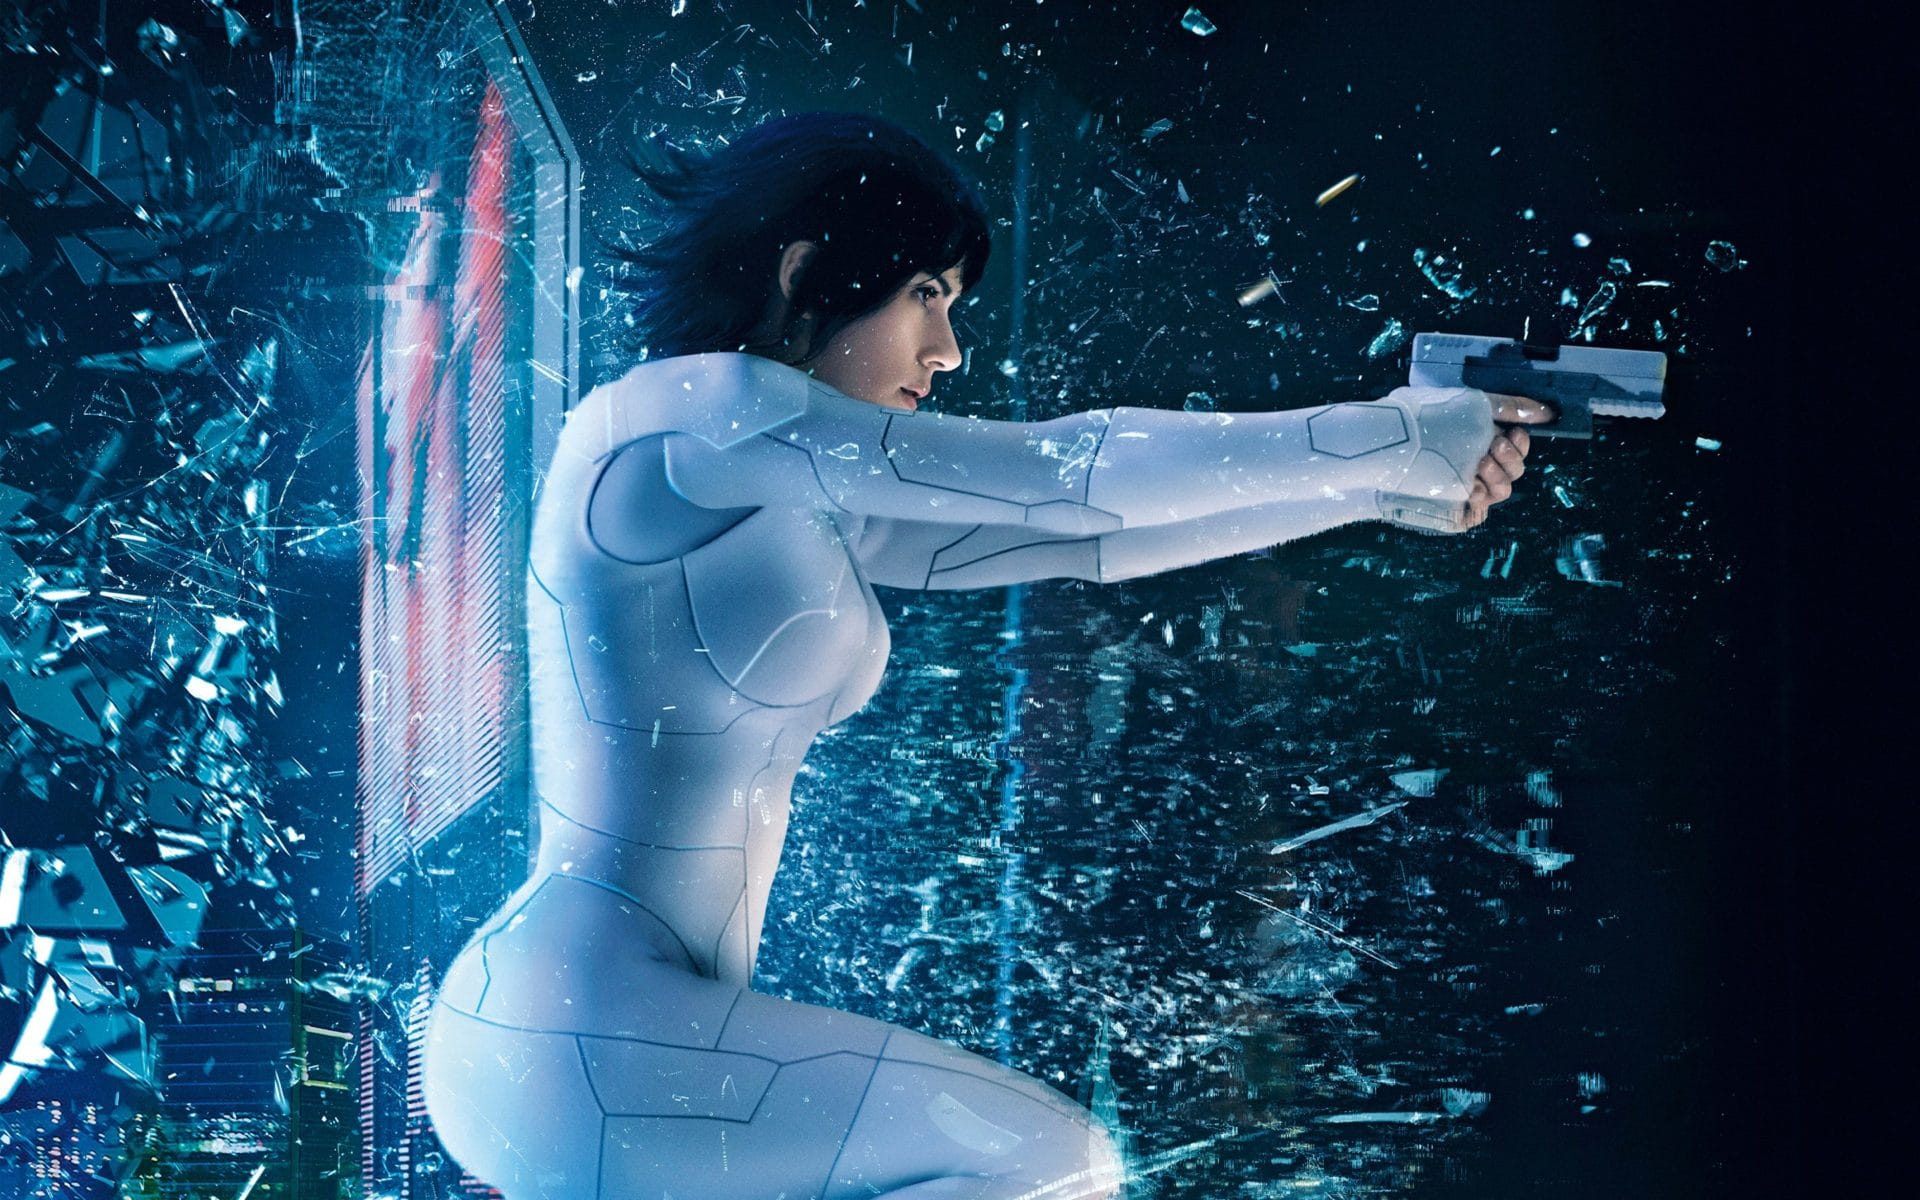 scarlett_johansson_ghost_in_the_shell-wide1 Ghost in the Shell